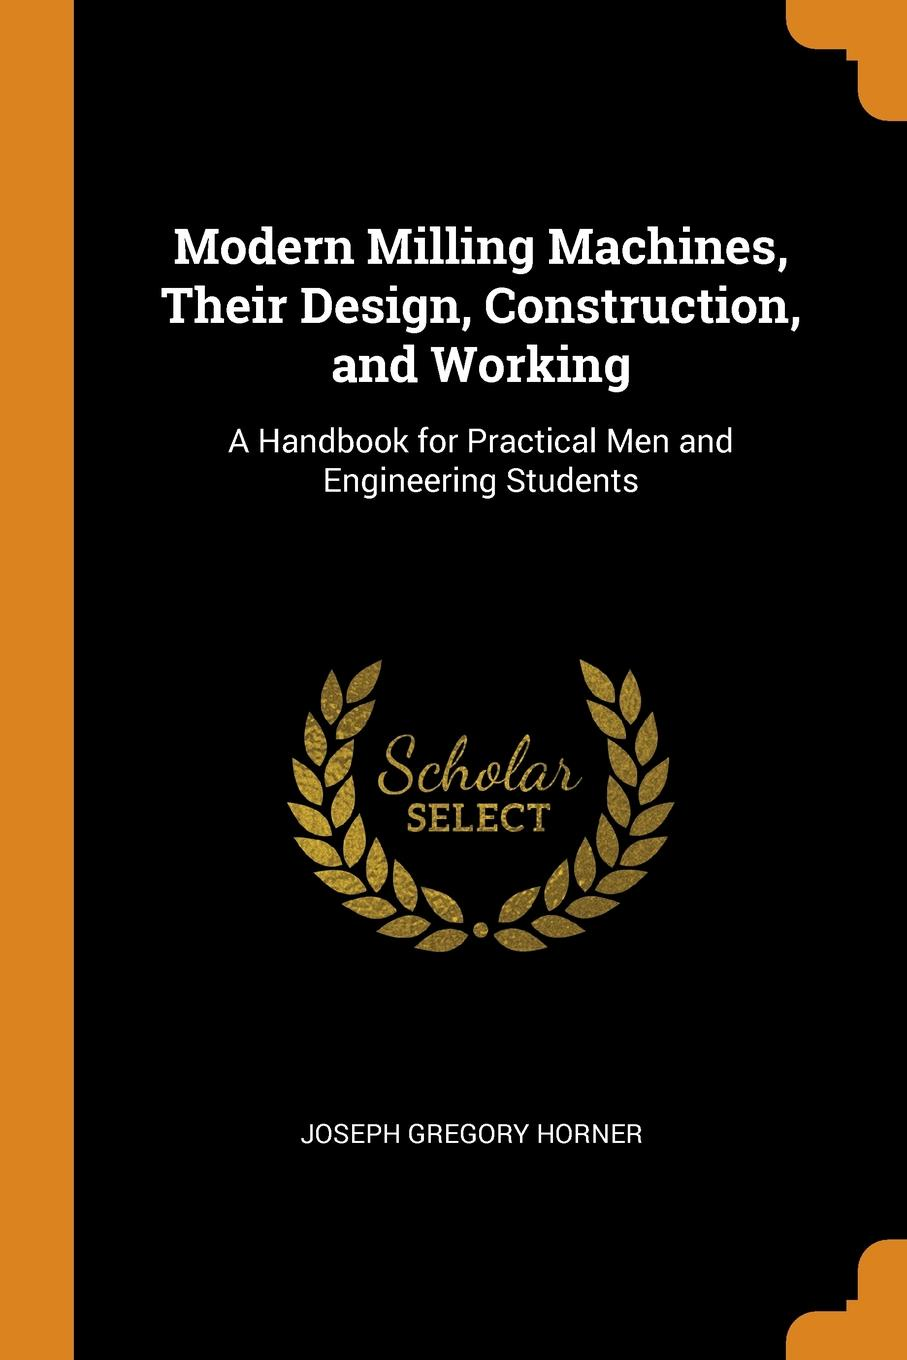 Joseph Gregory Horner Modern Milling Machines, Their Design, Construction, and Working. A Handbook for Practical Men and Engineering Students